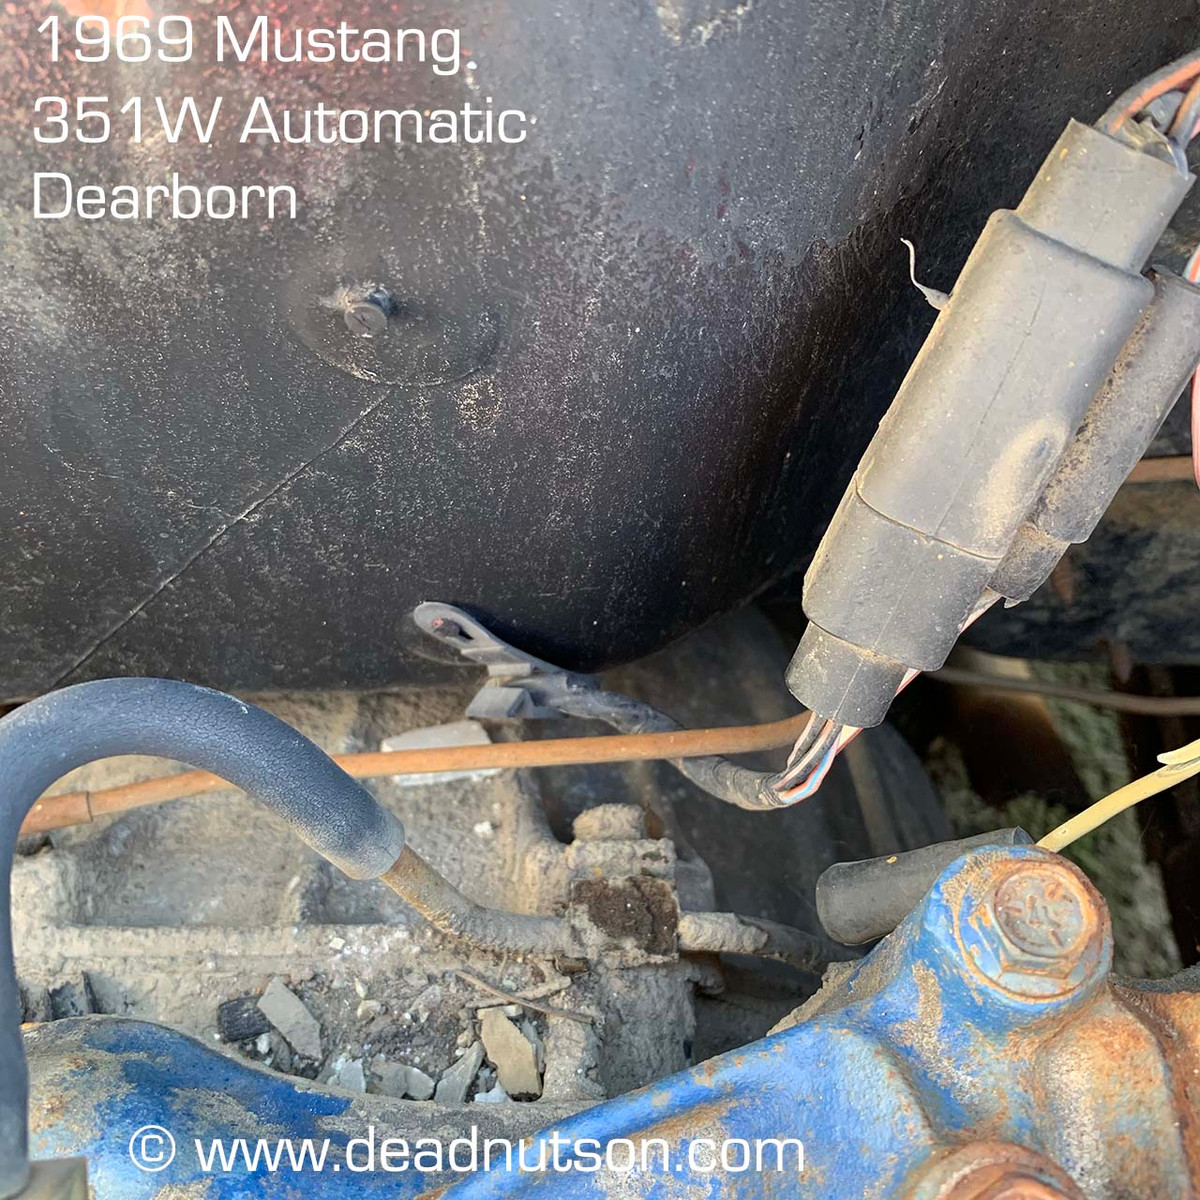 1969 mustang wiring harness 1967 70 firewall wire harness clip dead nuts on  1967 70 firewall wire harness clip